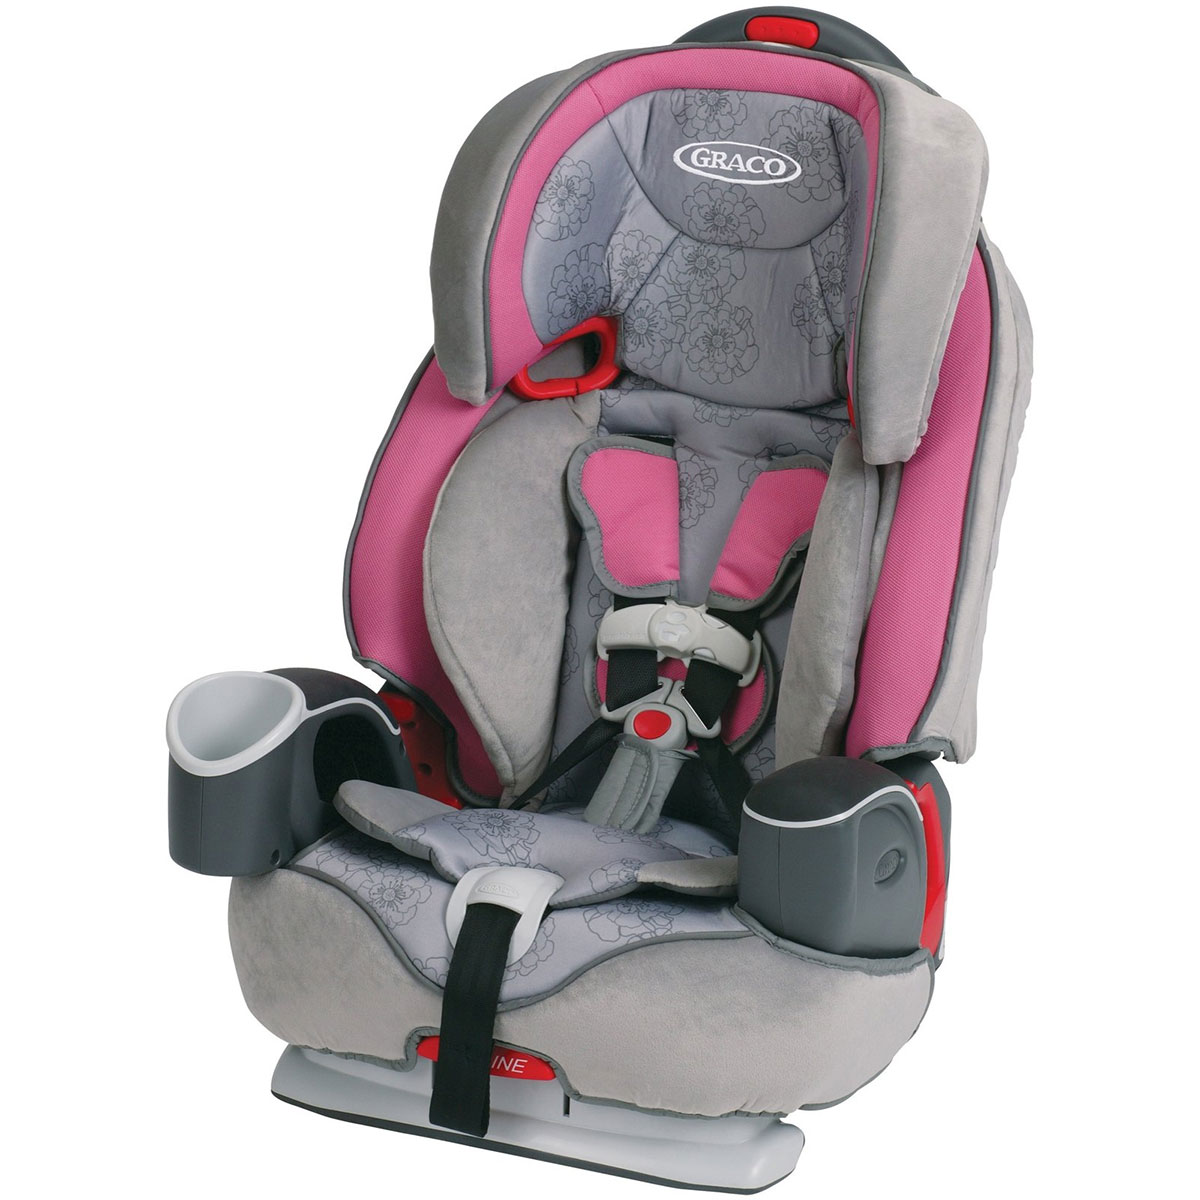 Graco Nautilus 65 3-in-1 Harness Booster Car Seat - Valerie